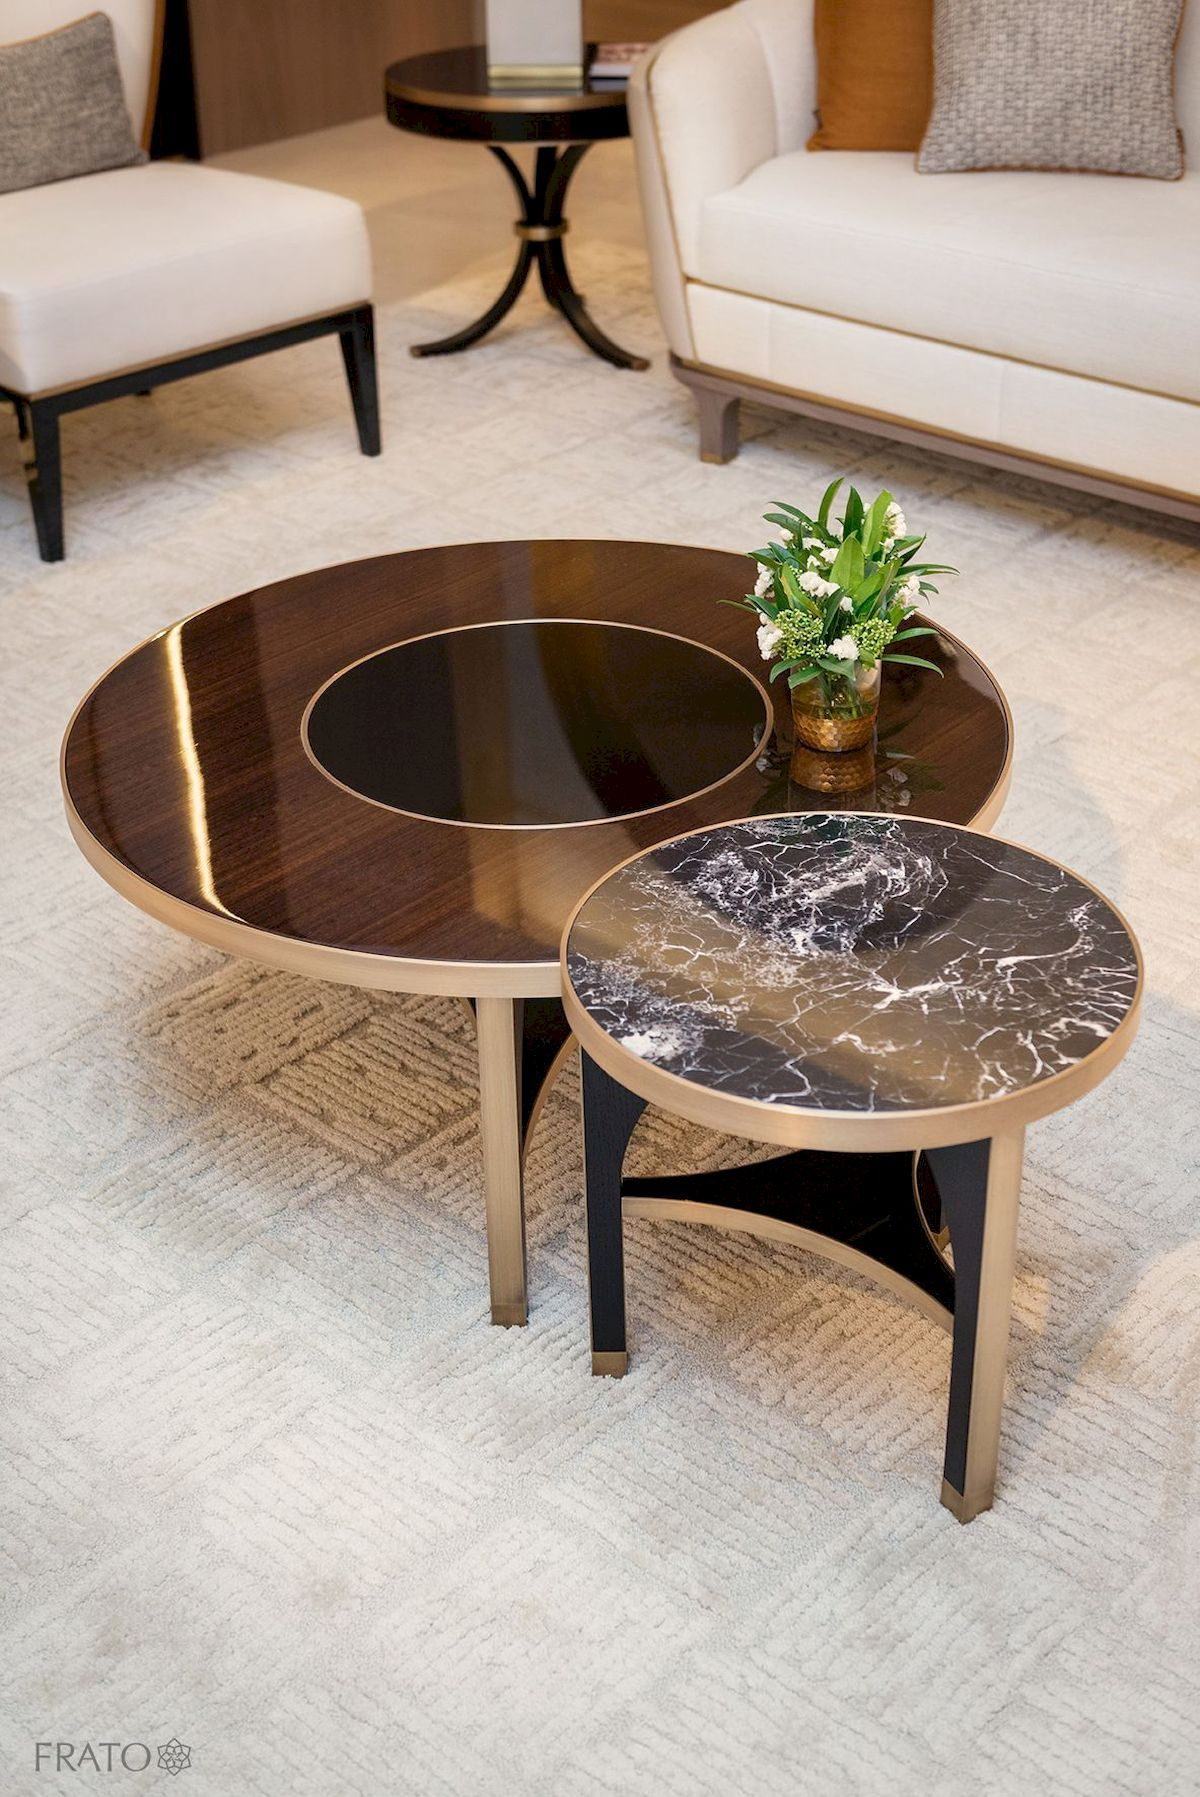 Centre Table Designs For Living Room: Cool Nesting Coffe Table For Add Style Your LivingRoom